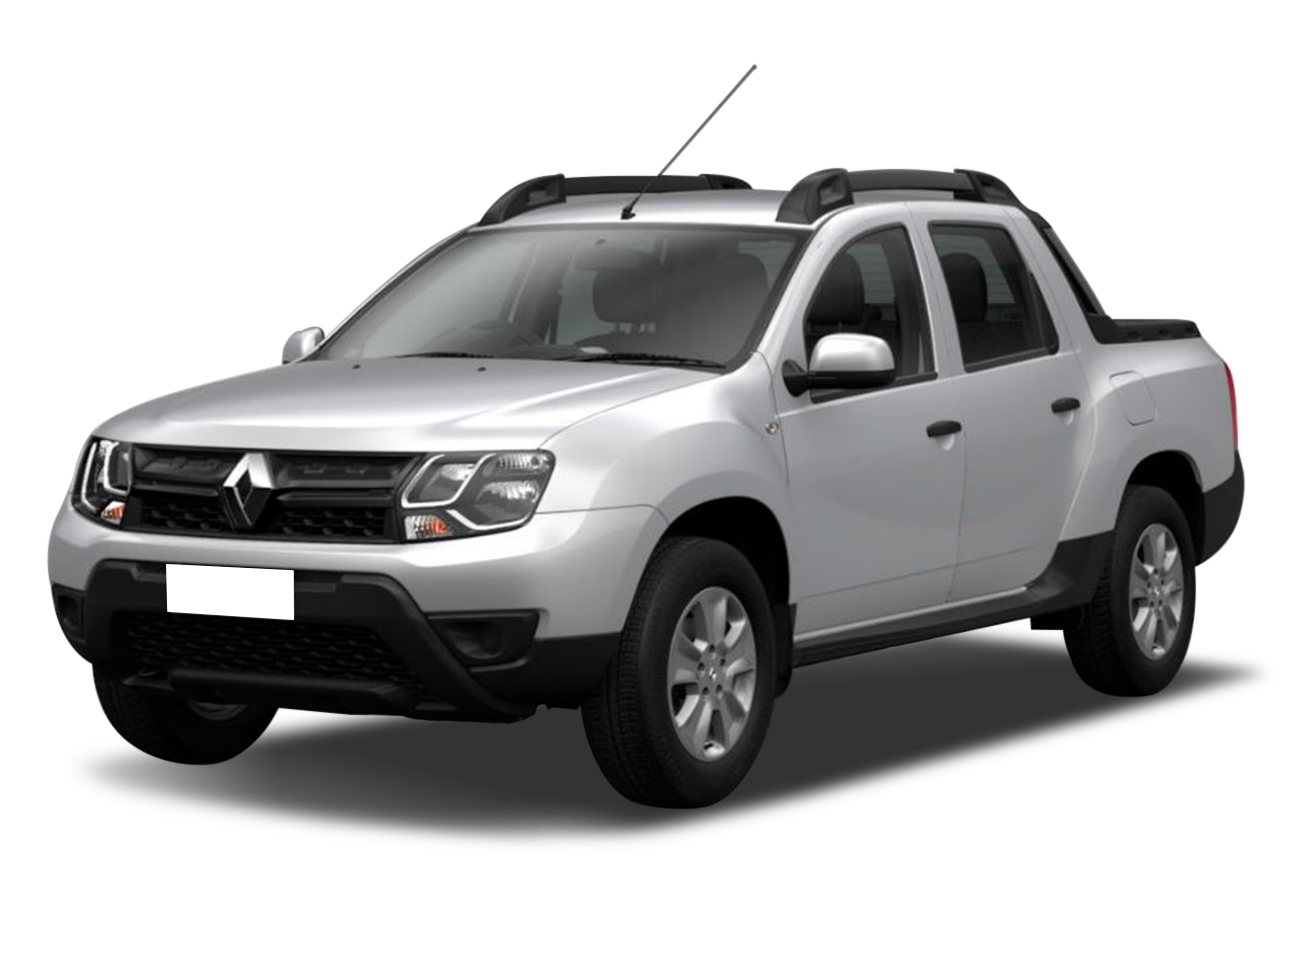 RENAULT - DUSTER OROCH - 1.6 16V SCE FLEX EXPRESSION MANUAL